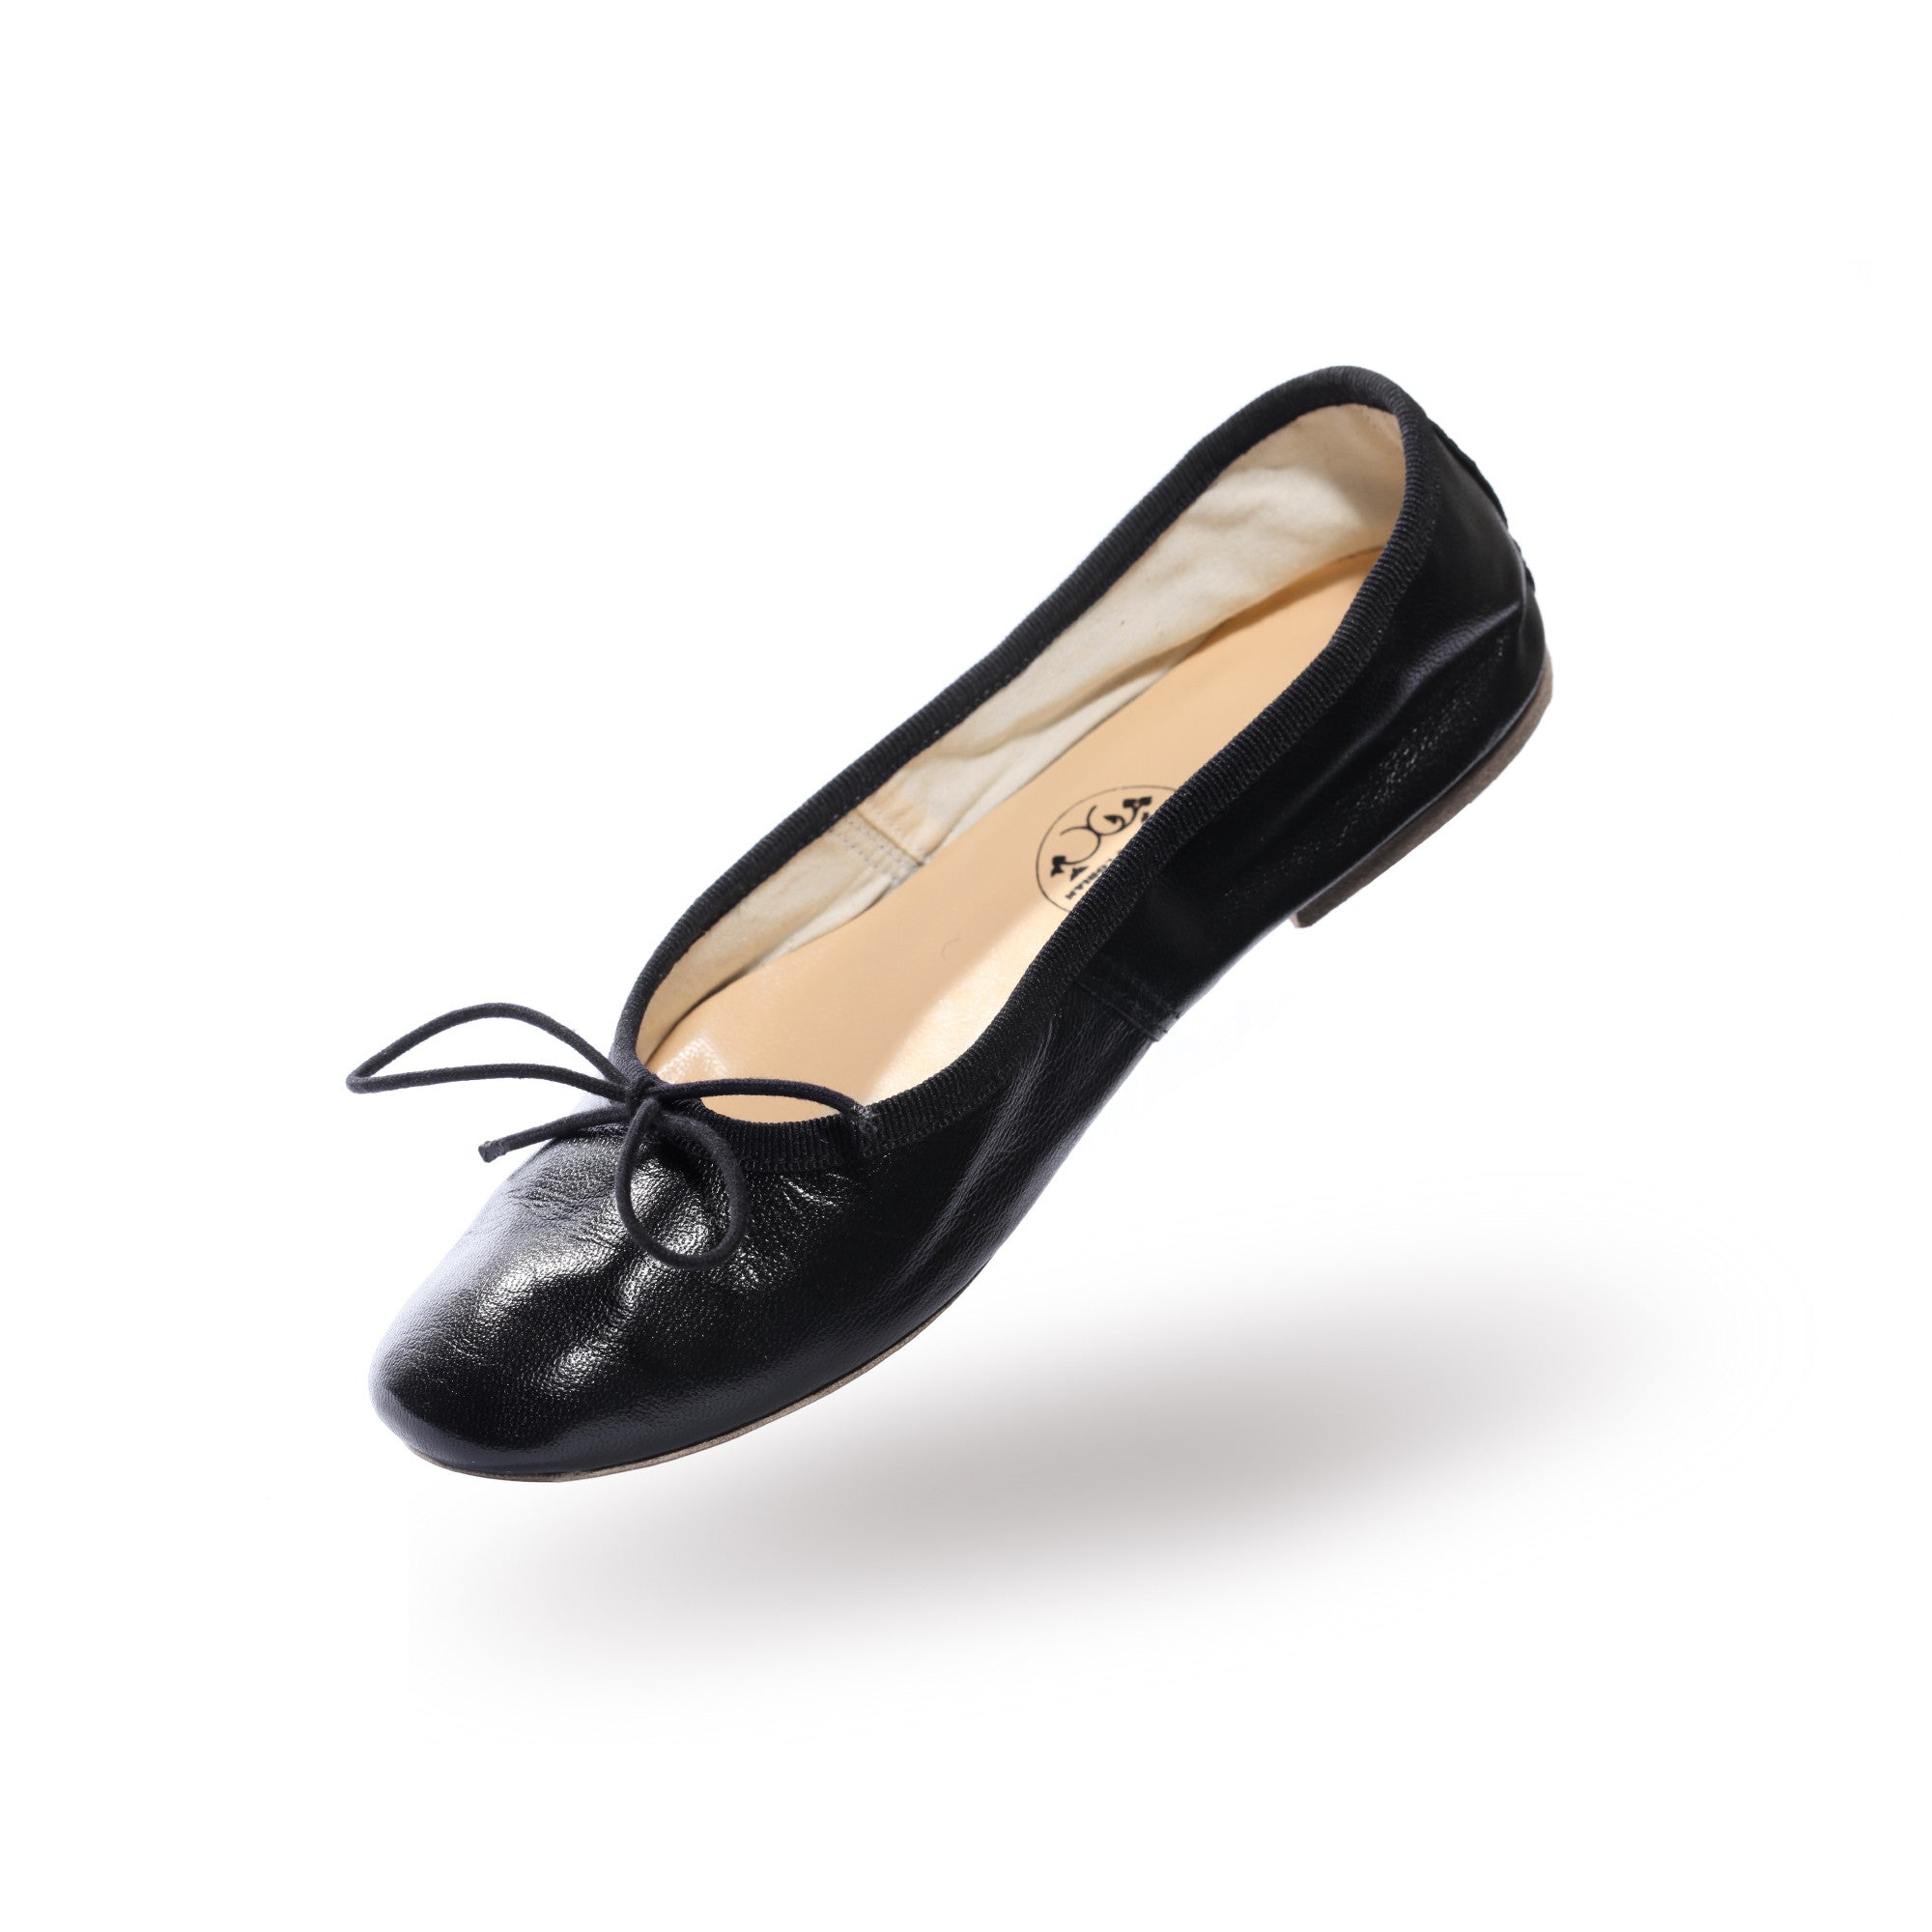 porselli ballet flats black leather jardins florian